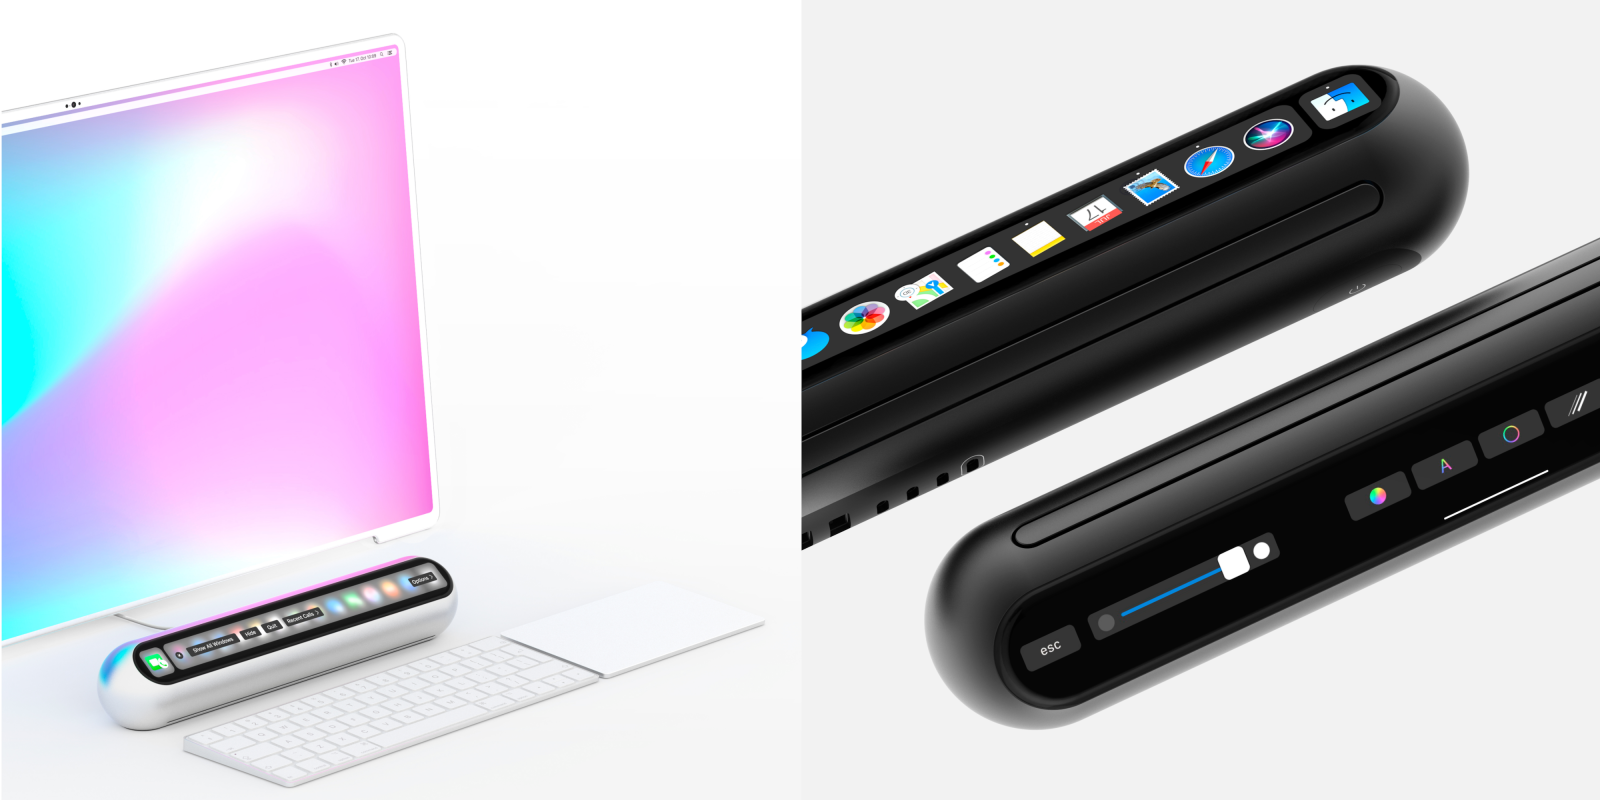 Mac concept imagines a refreshed mini form factor w/ built-in Touch Bar & Face ID